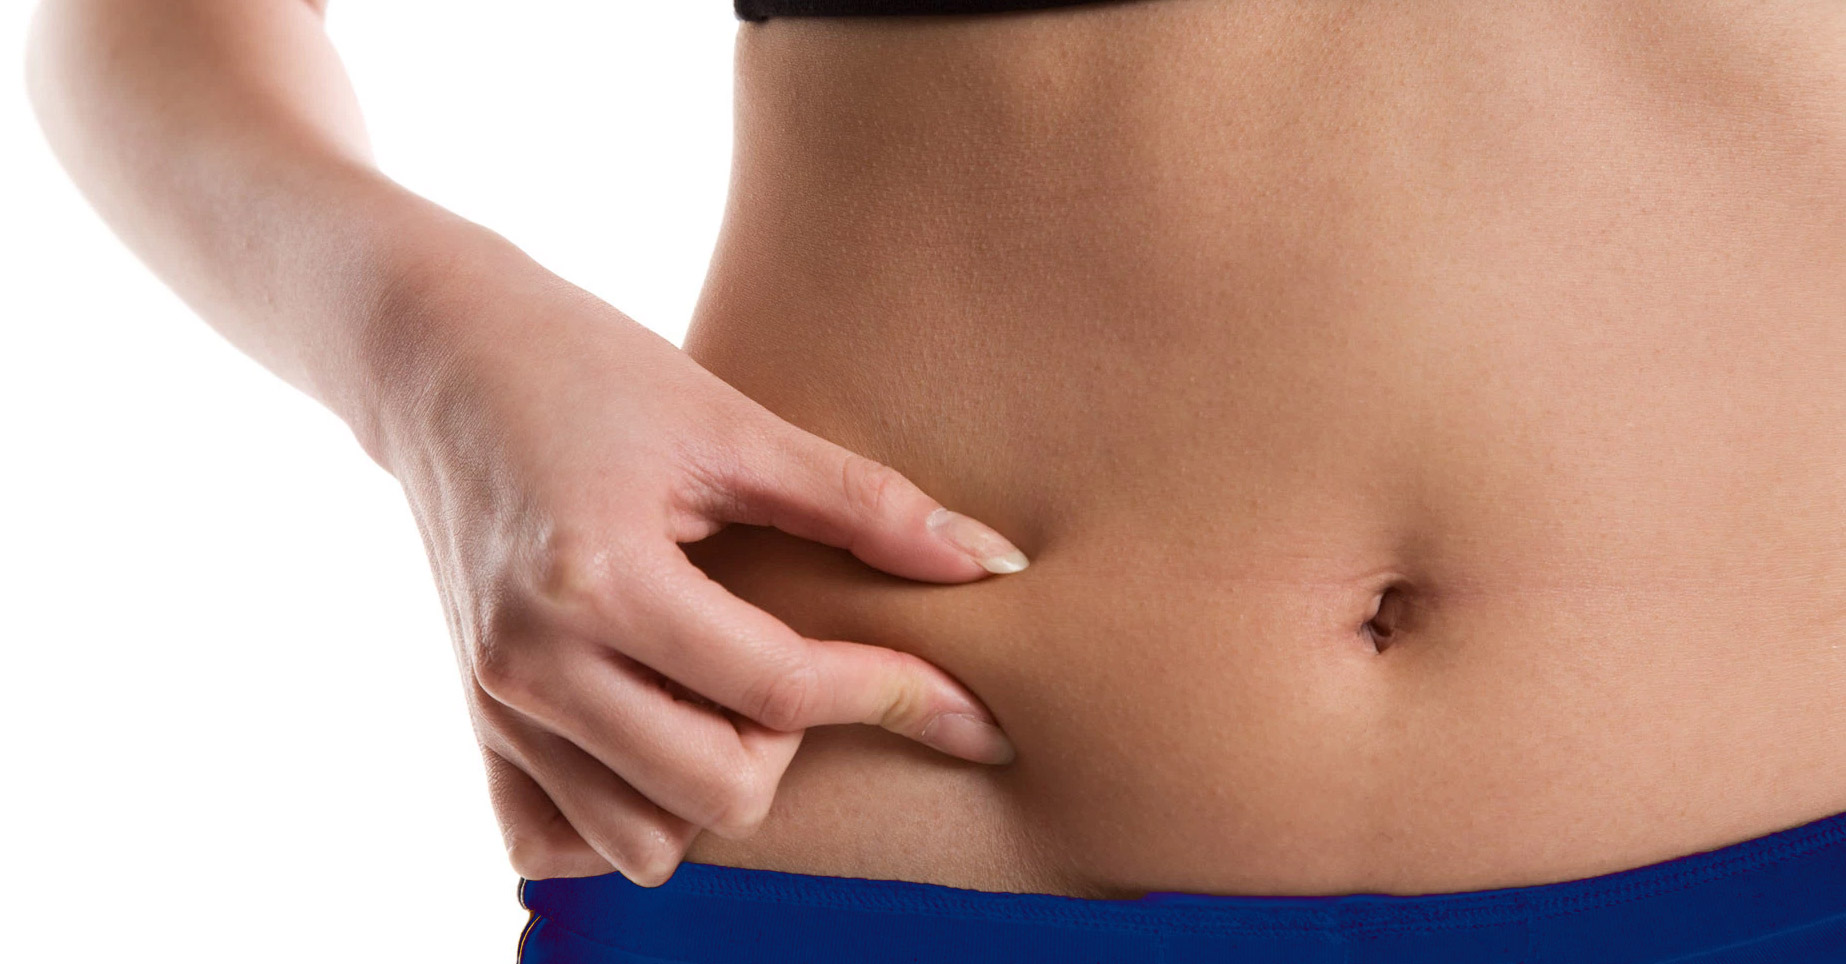 Smart Lipo for excessive fat - liposuction model